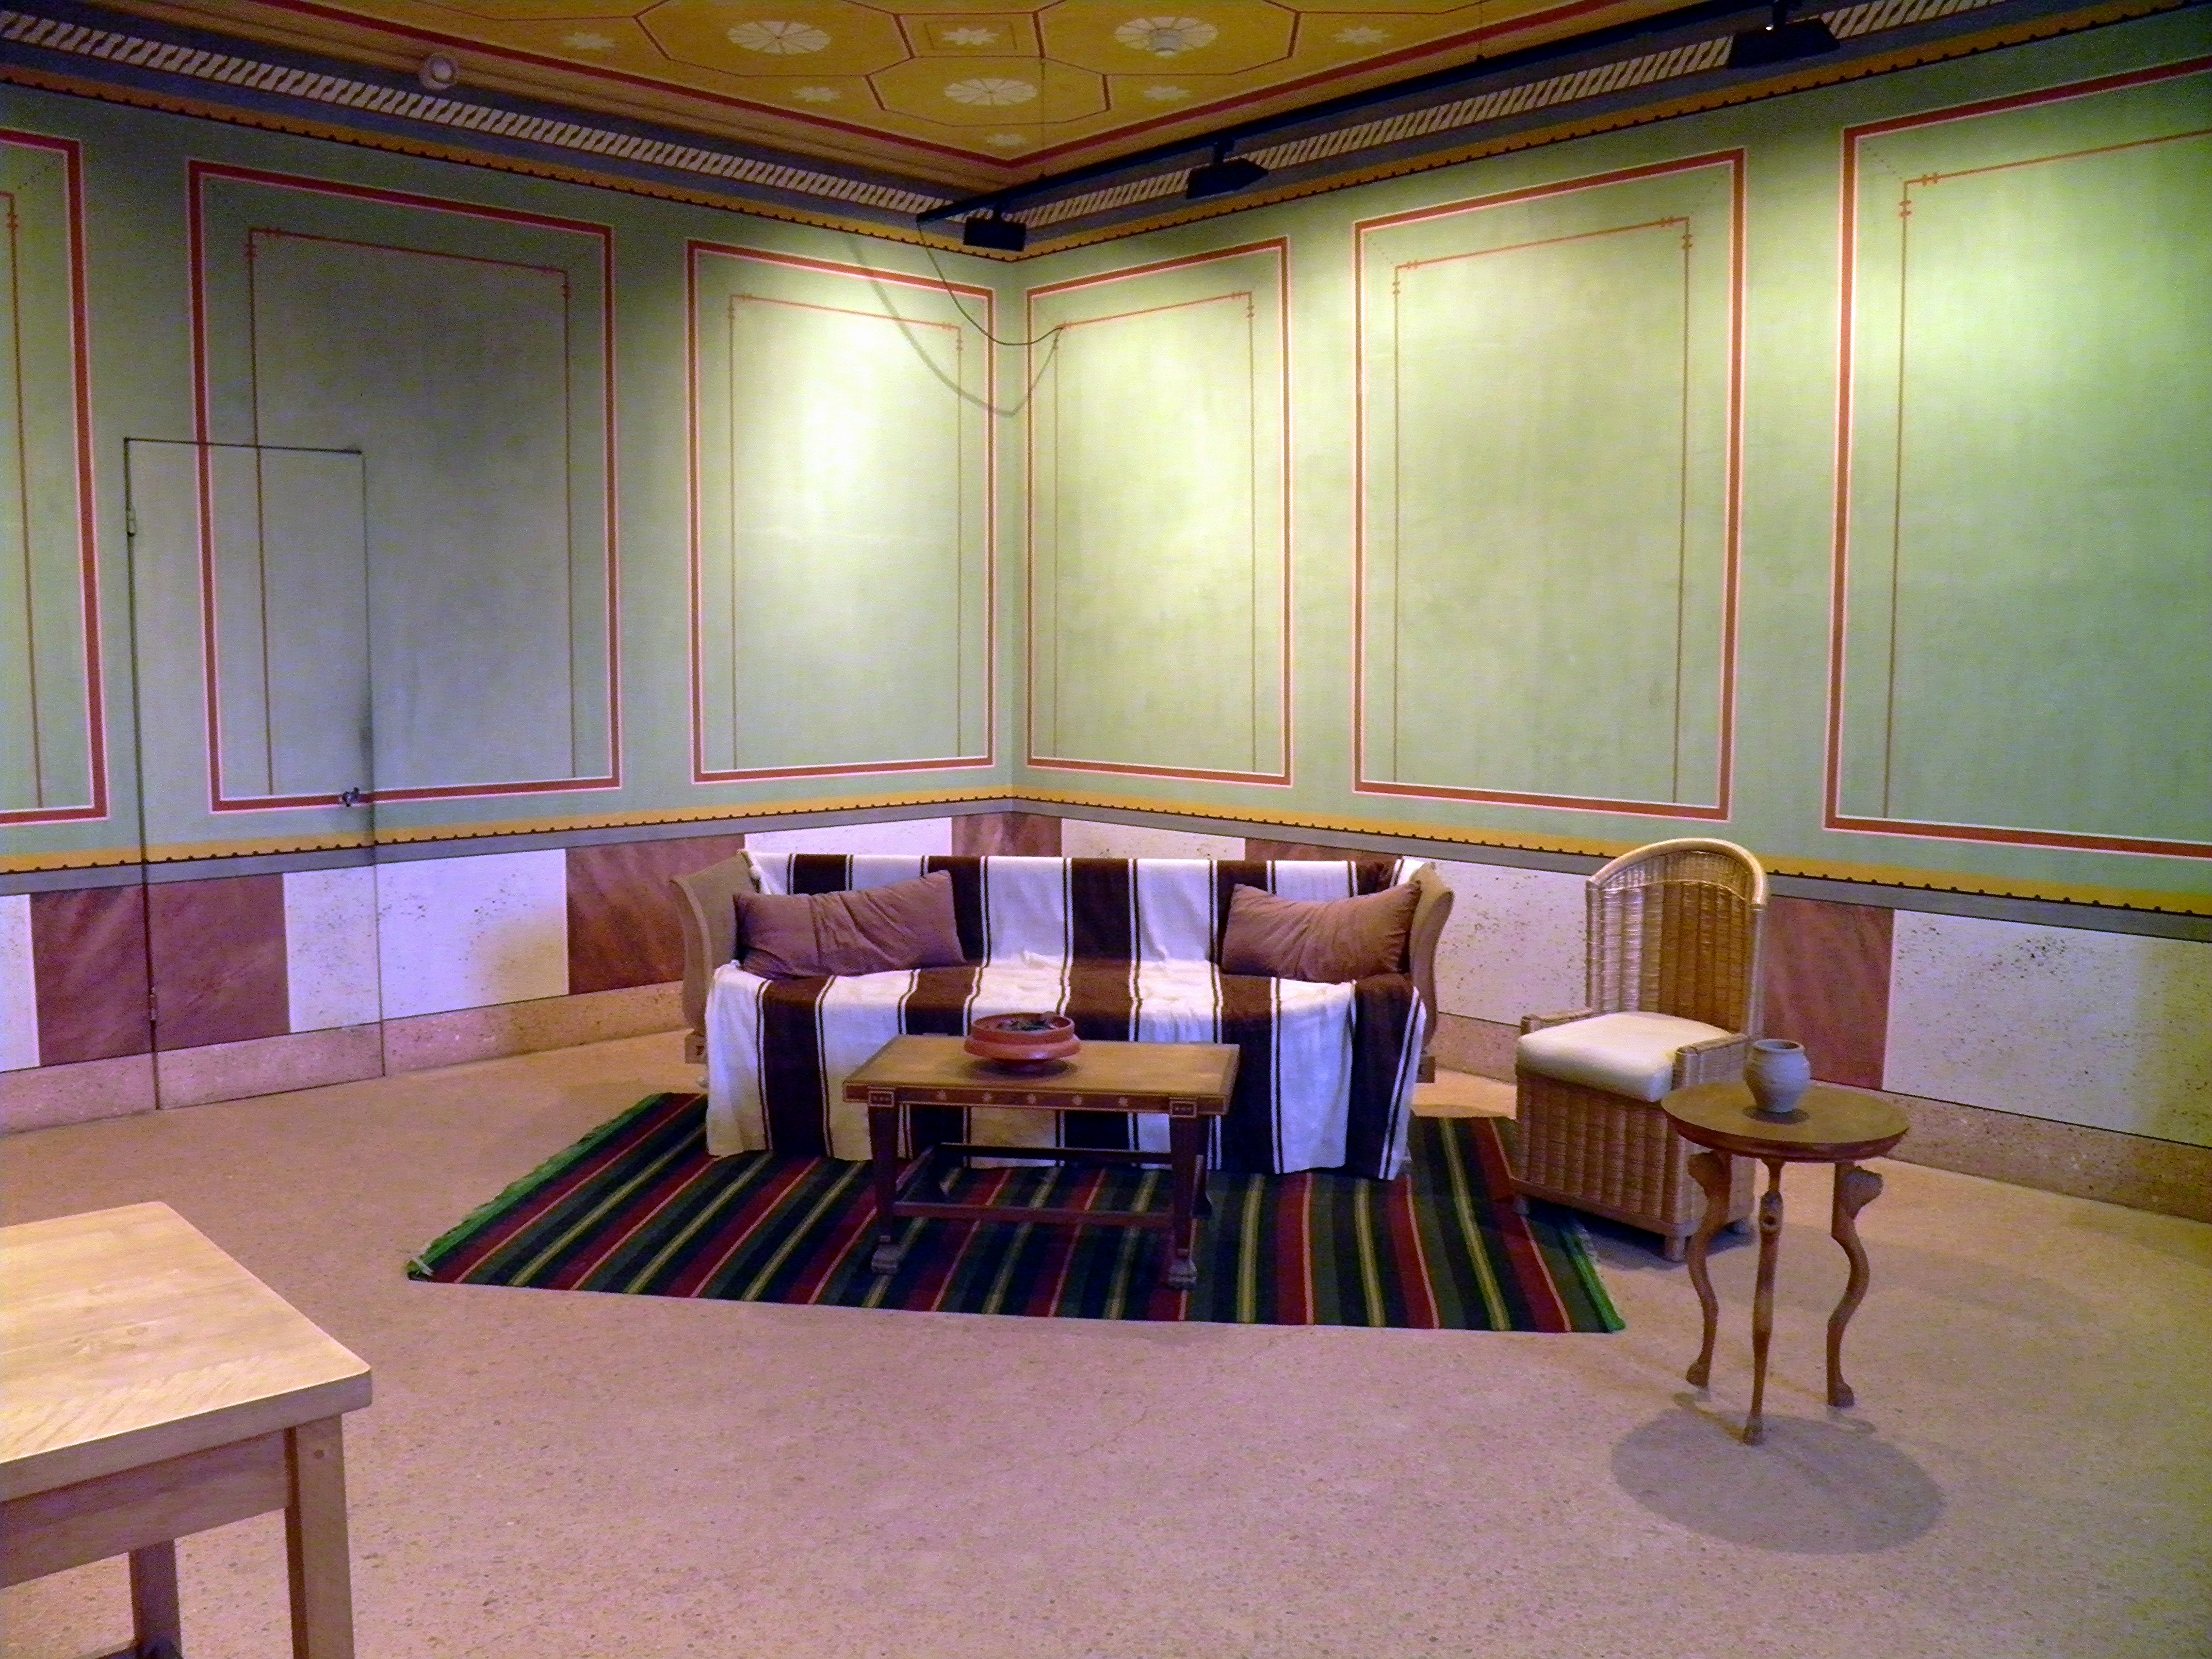 File Reconstructed Roman Furniture And Mural Painting In